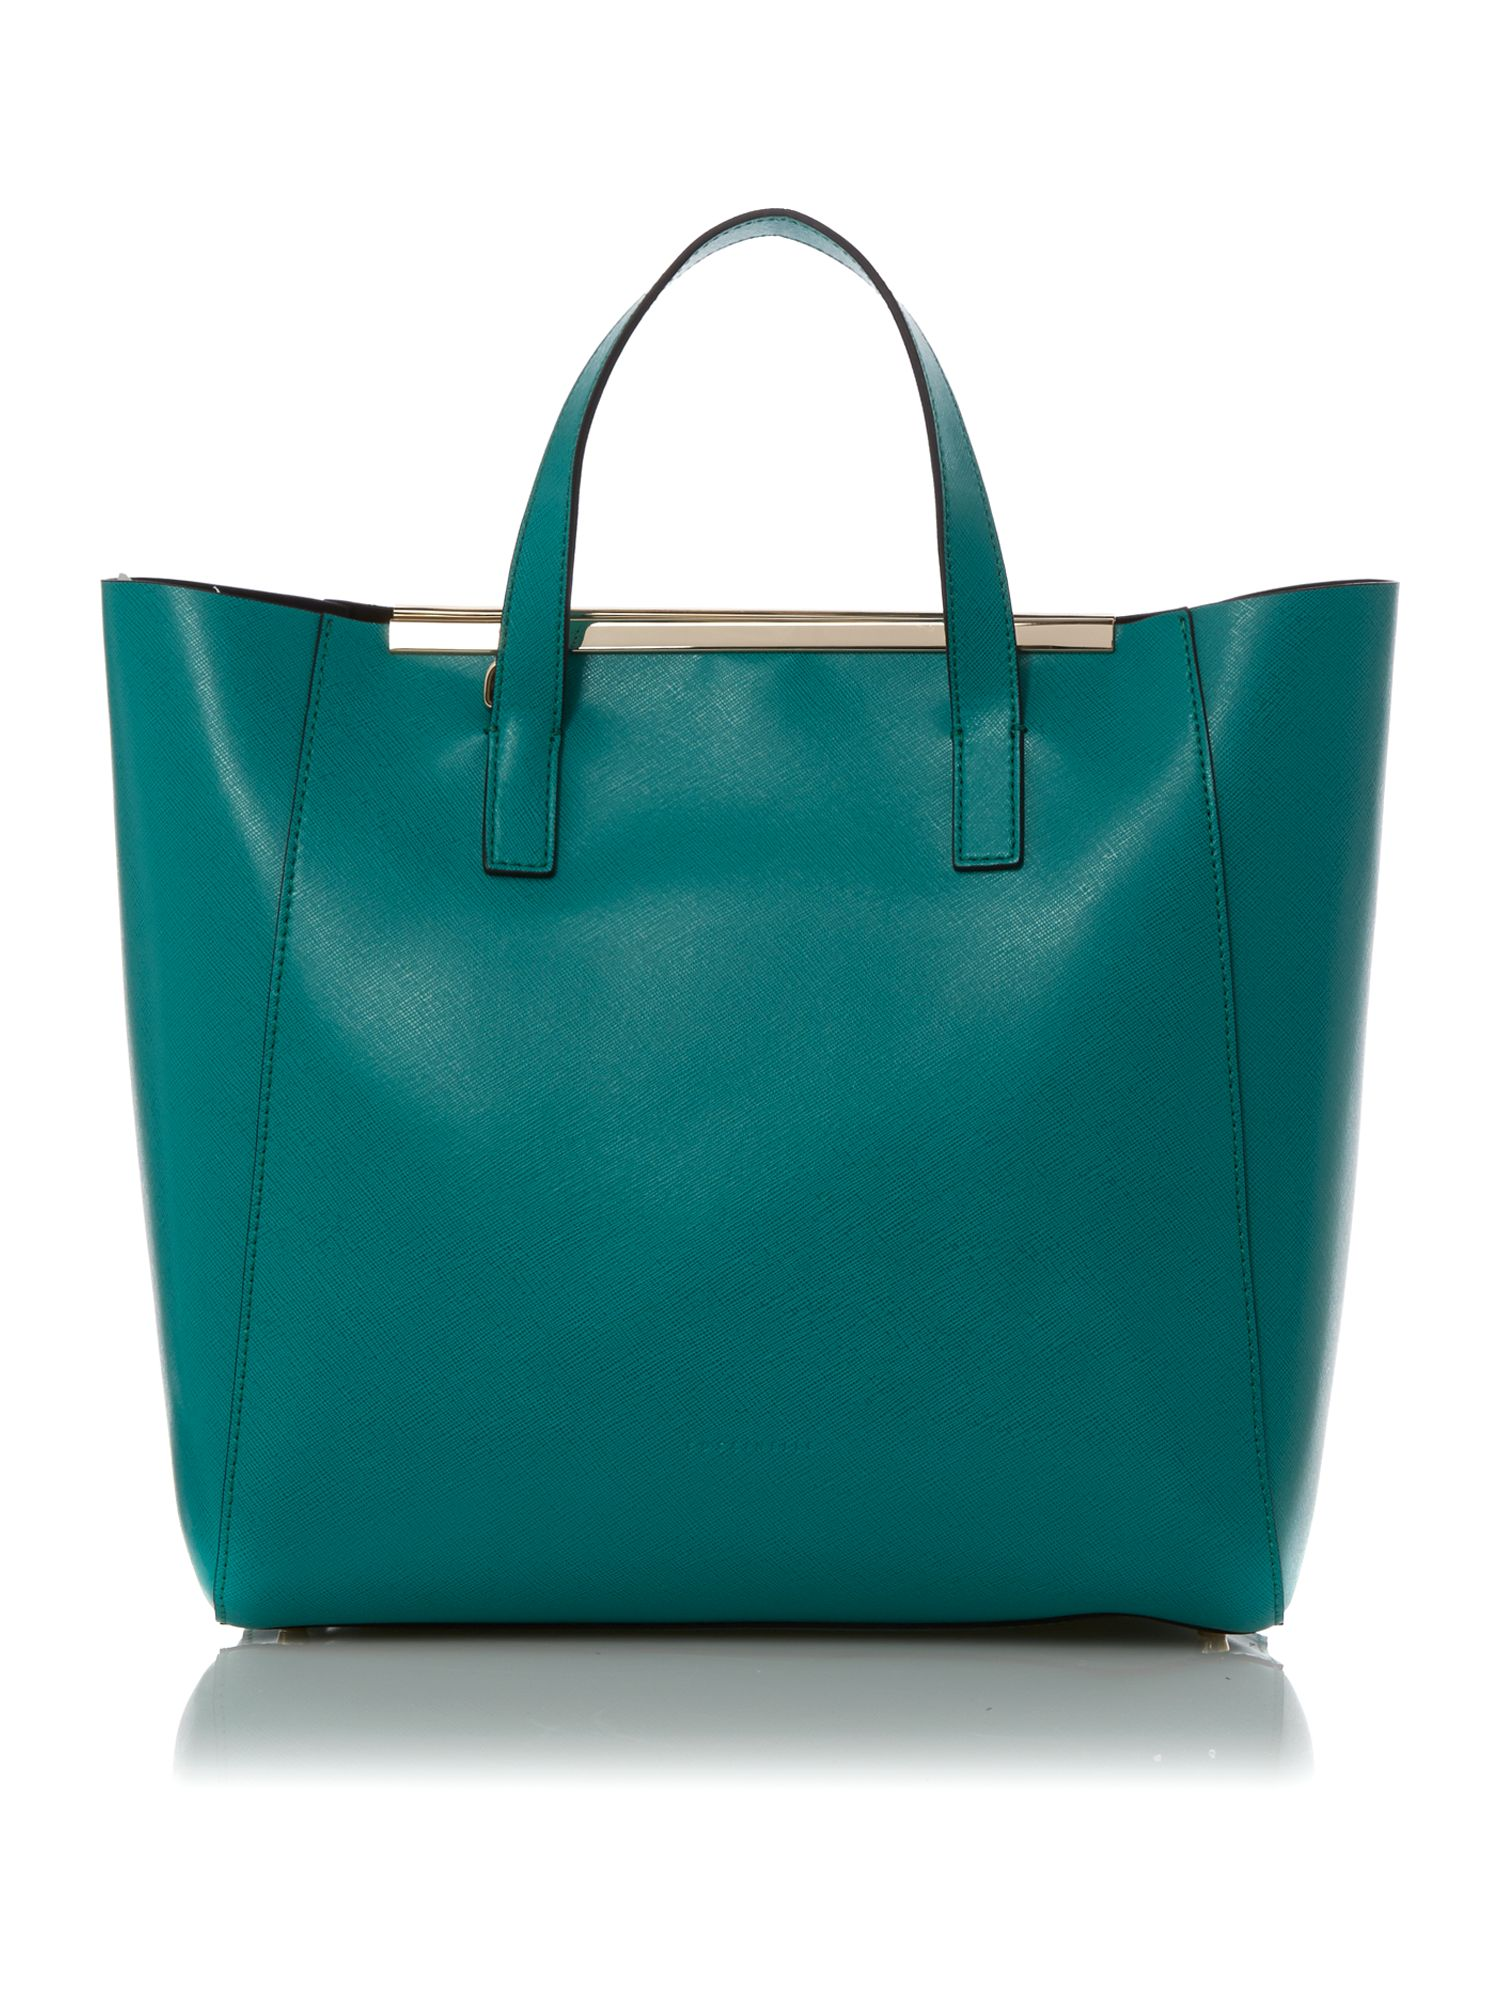 Amy green tote bag